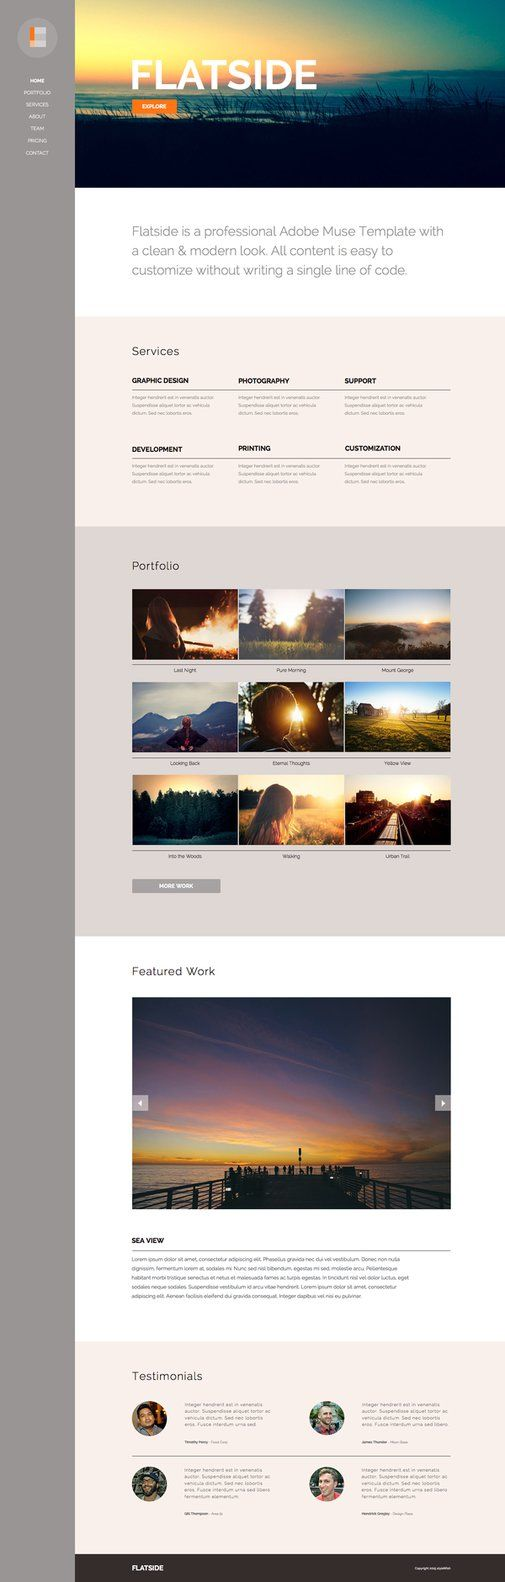 The 34 best Adobe Muse Templates images on Pinterest | Adobe muse ...